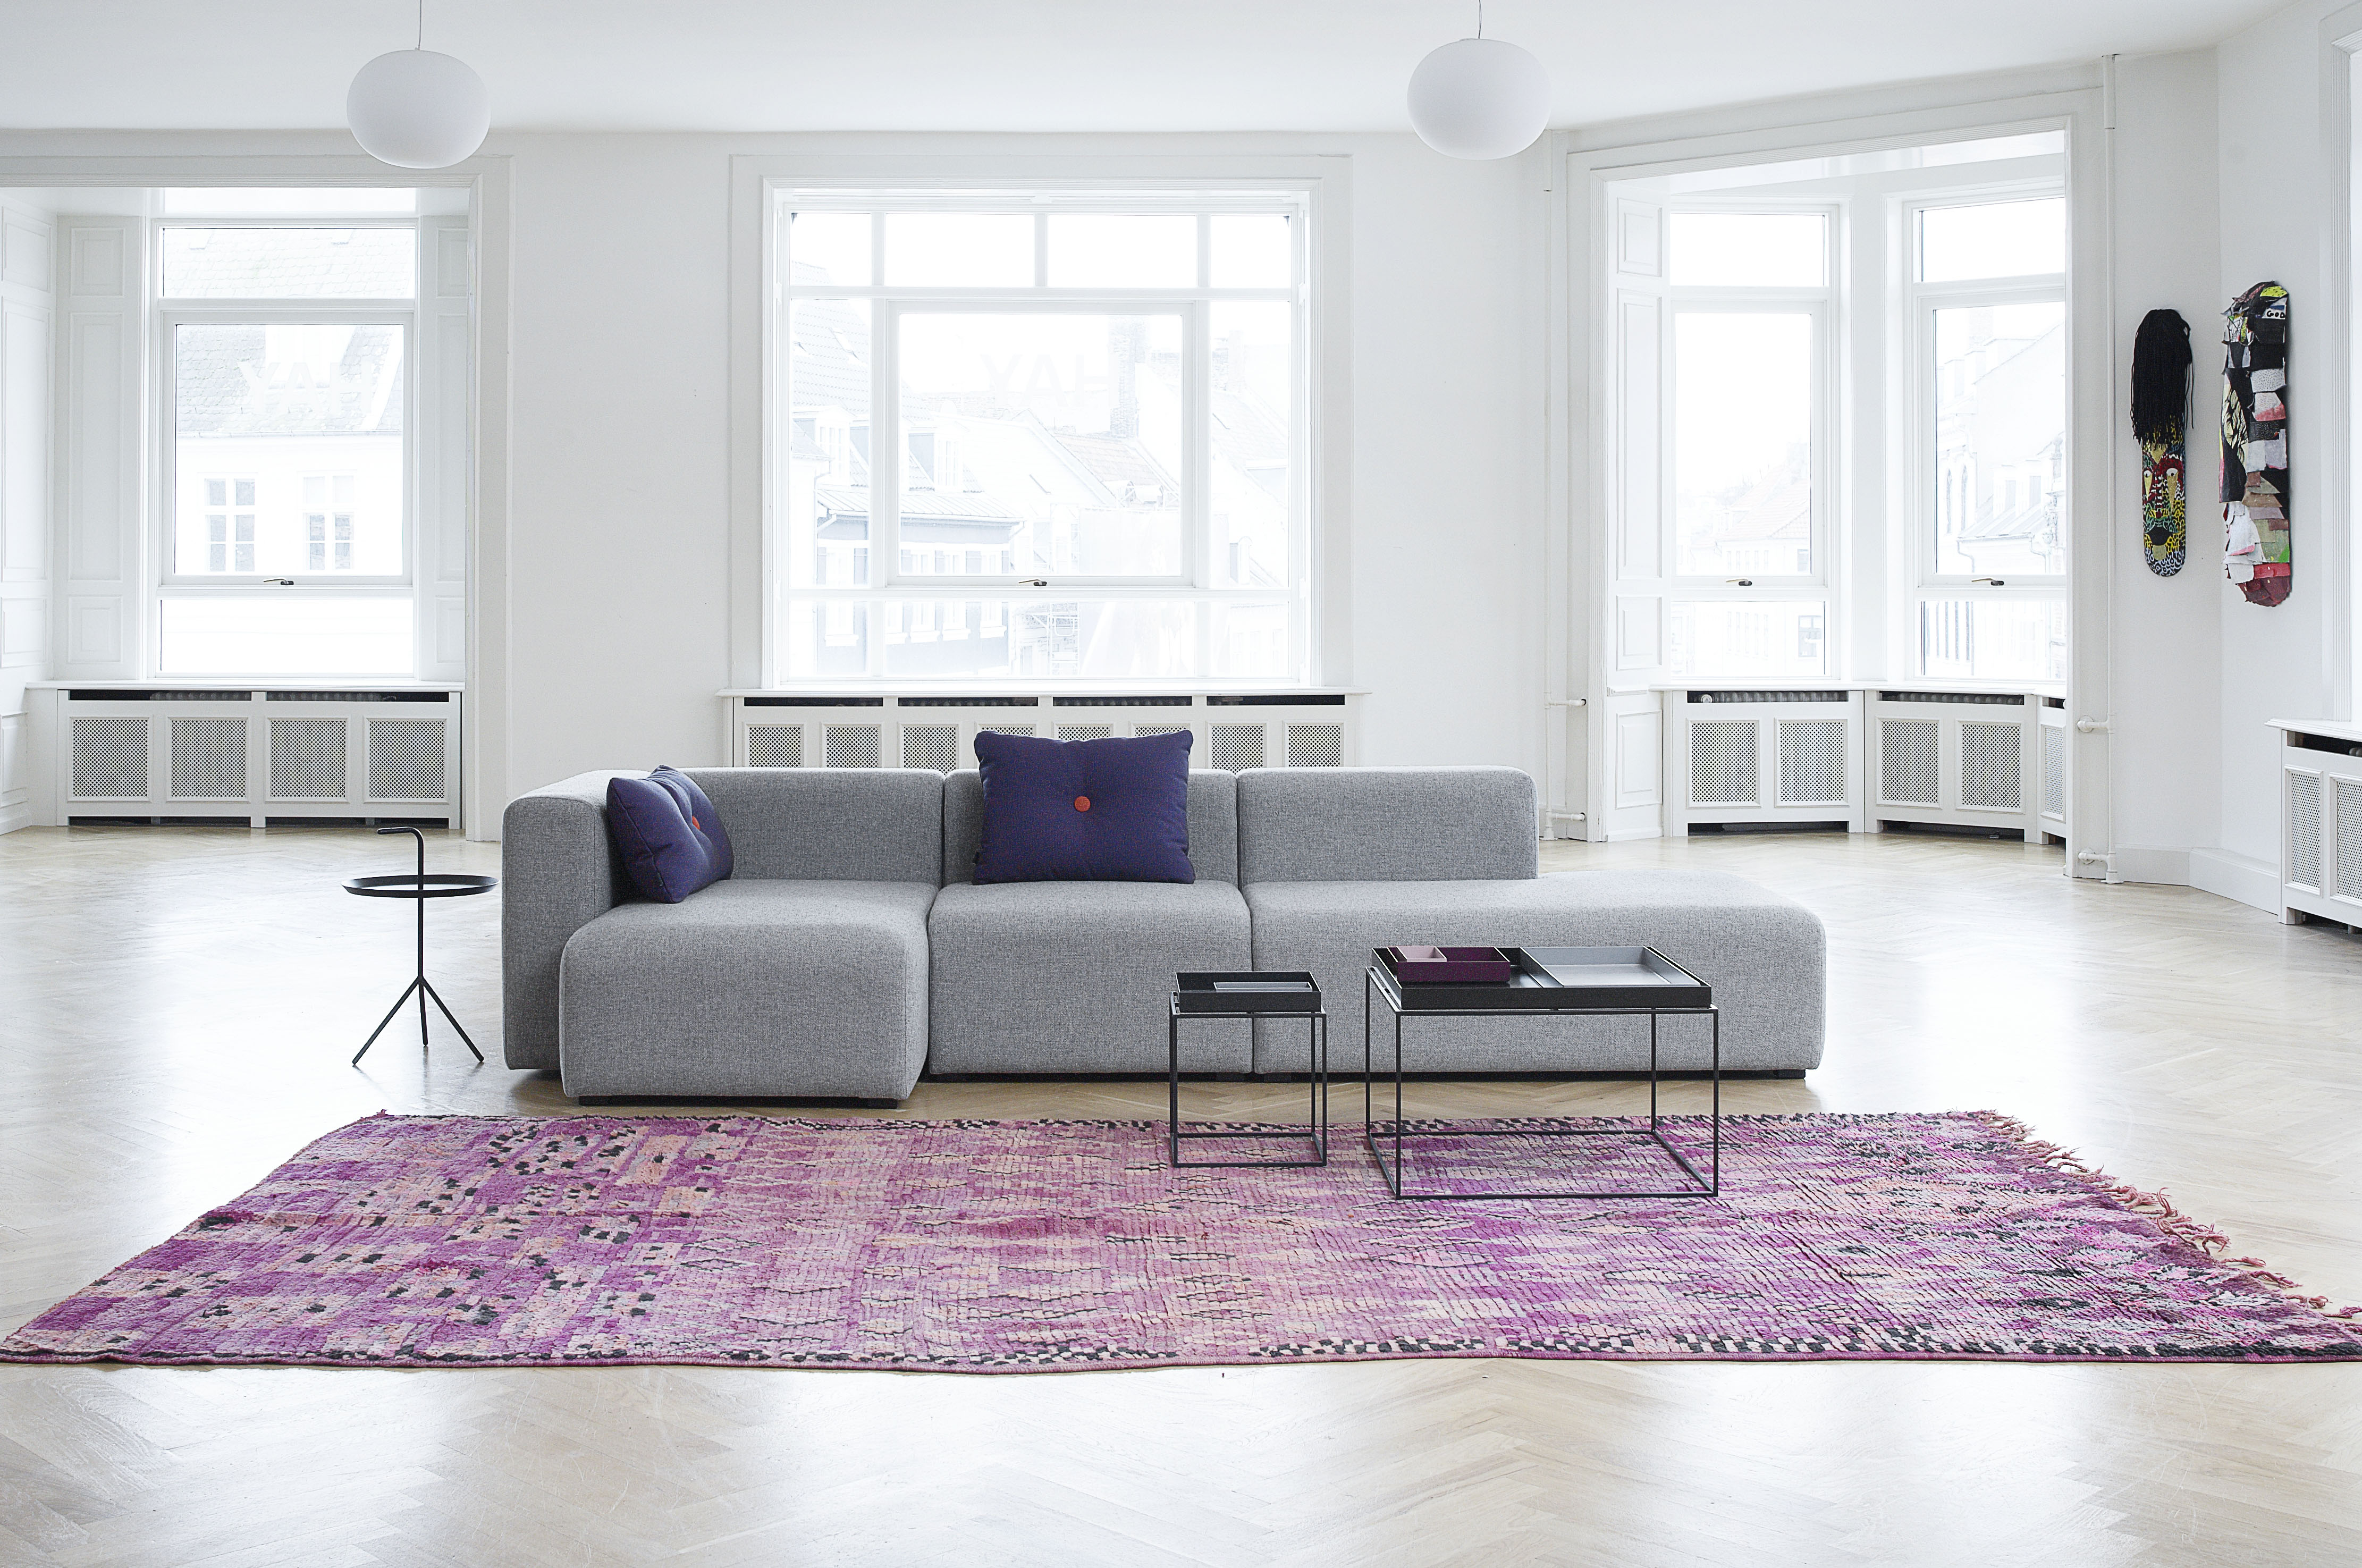 Loft space living room scene with sectional couch, rug, and coffee tables.